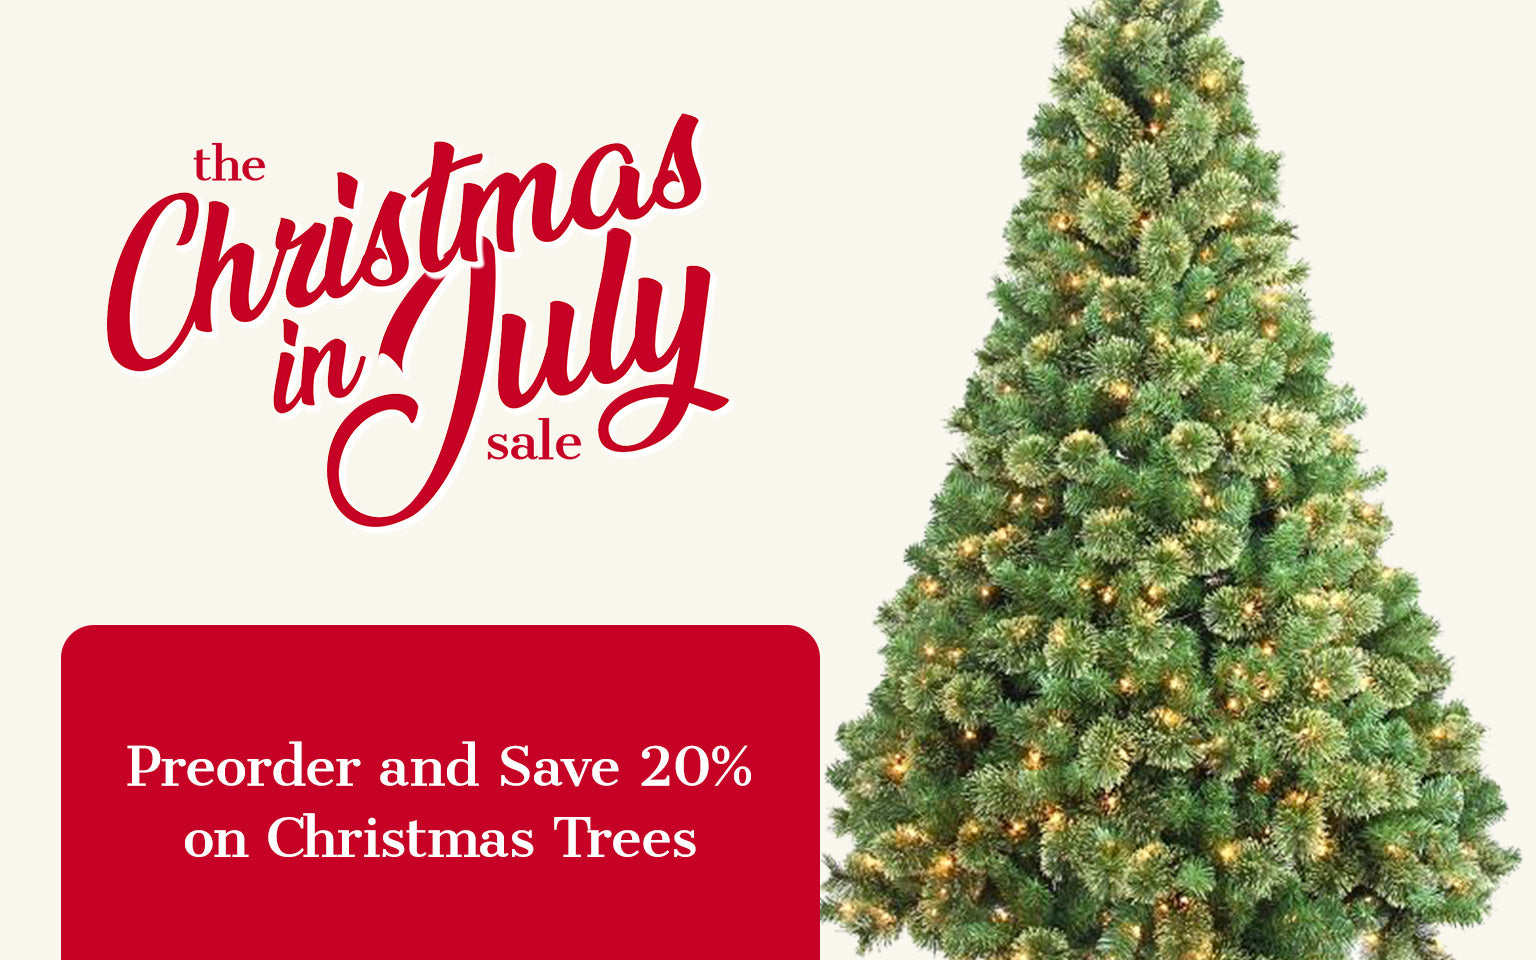 The Christmas in July Sale. Preorder and Save 20% on Christmas Trees.